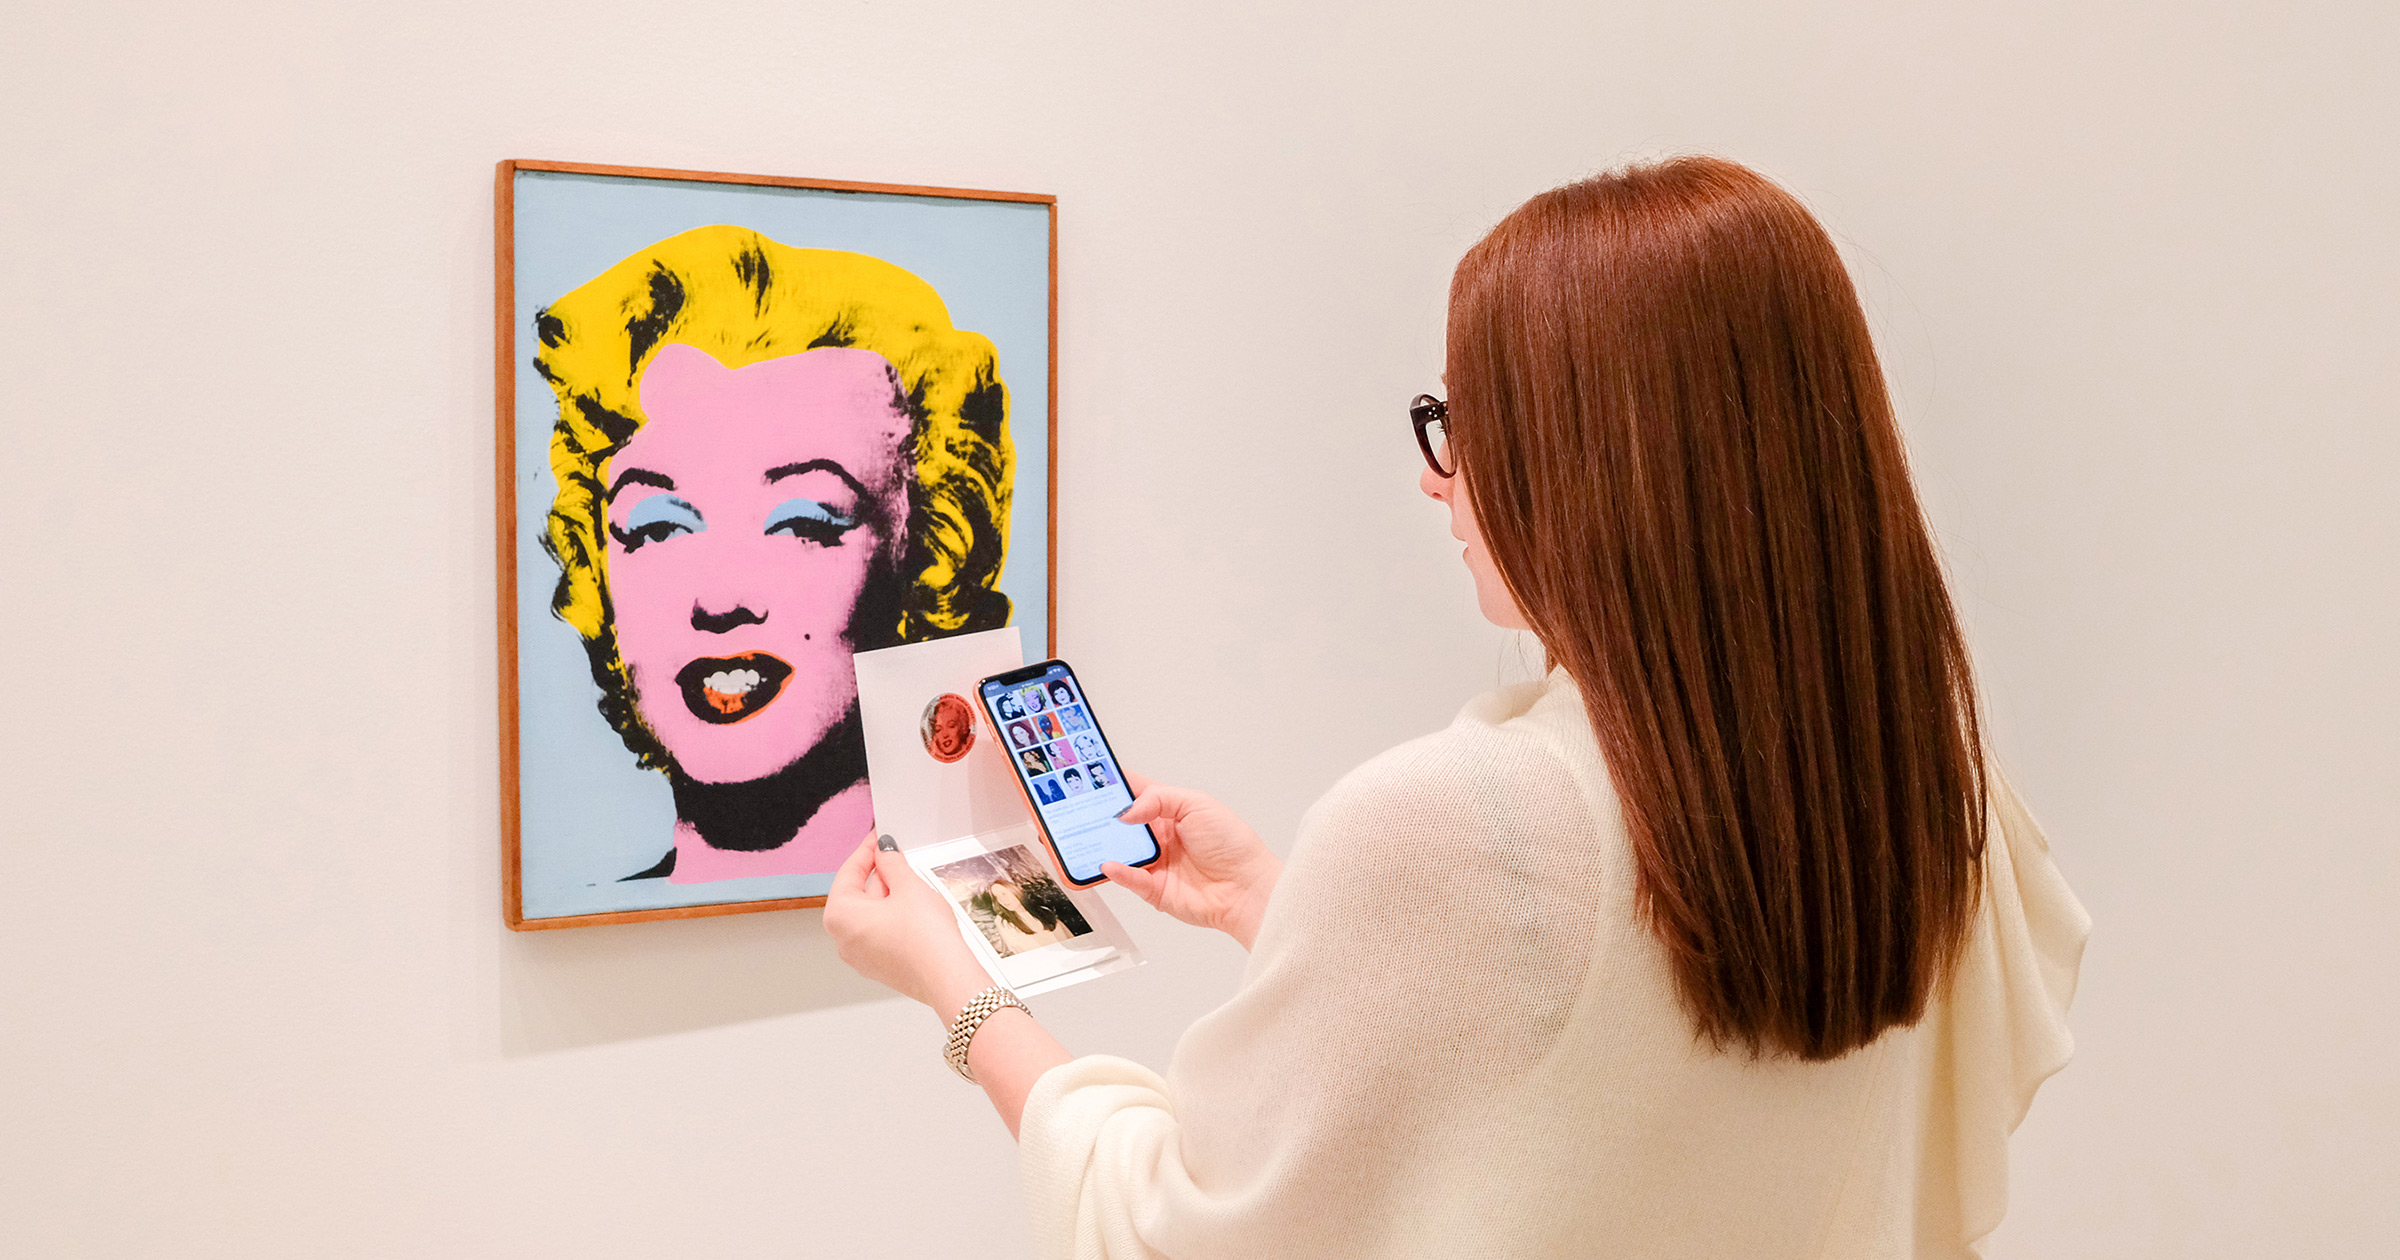 Blue Bite powers Warhol Women, a new exhibition at Lévy Gorvy in New York that presents Andy Warhol's portraits of women from the early 1960s through the 1980s, inviting the viewer to ponder the artist's complex and often contradictory relationship to myths and ideals of femininity, beauty and power.